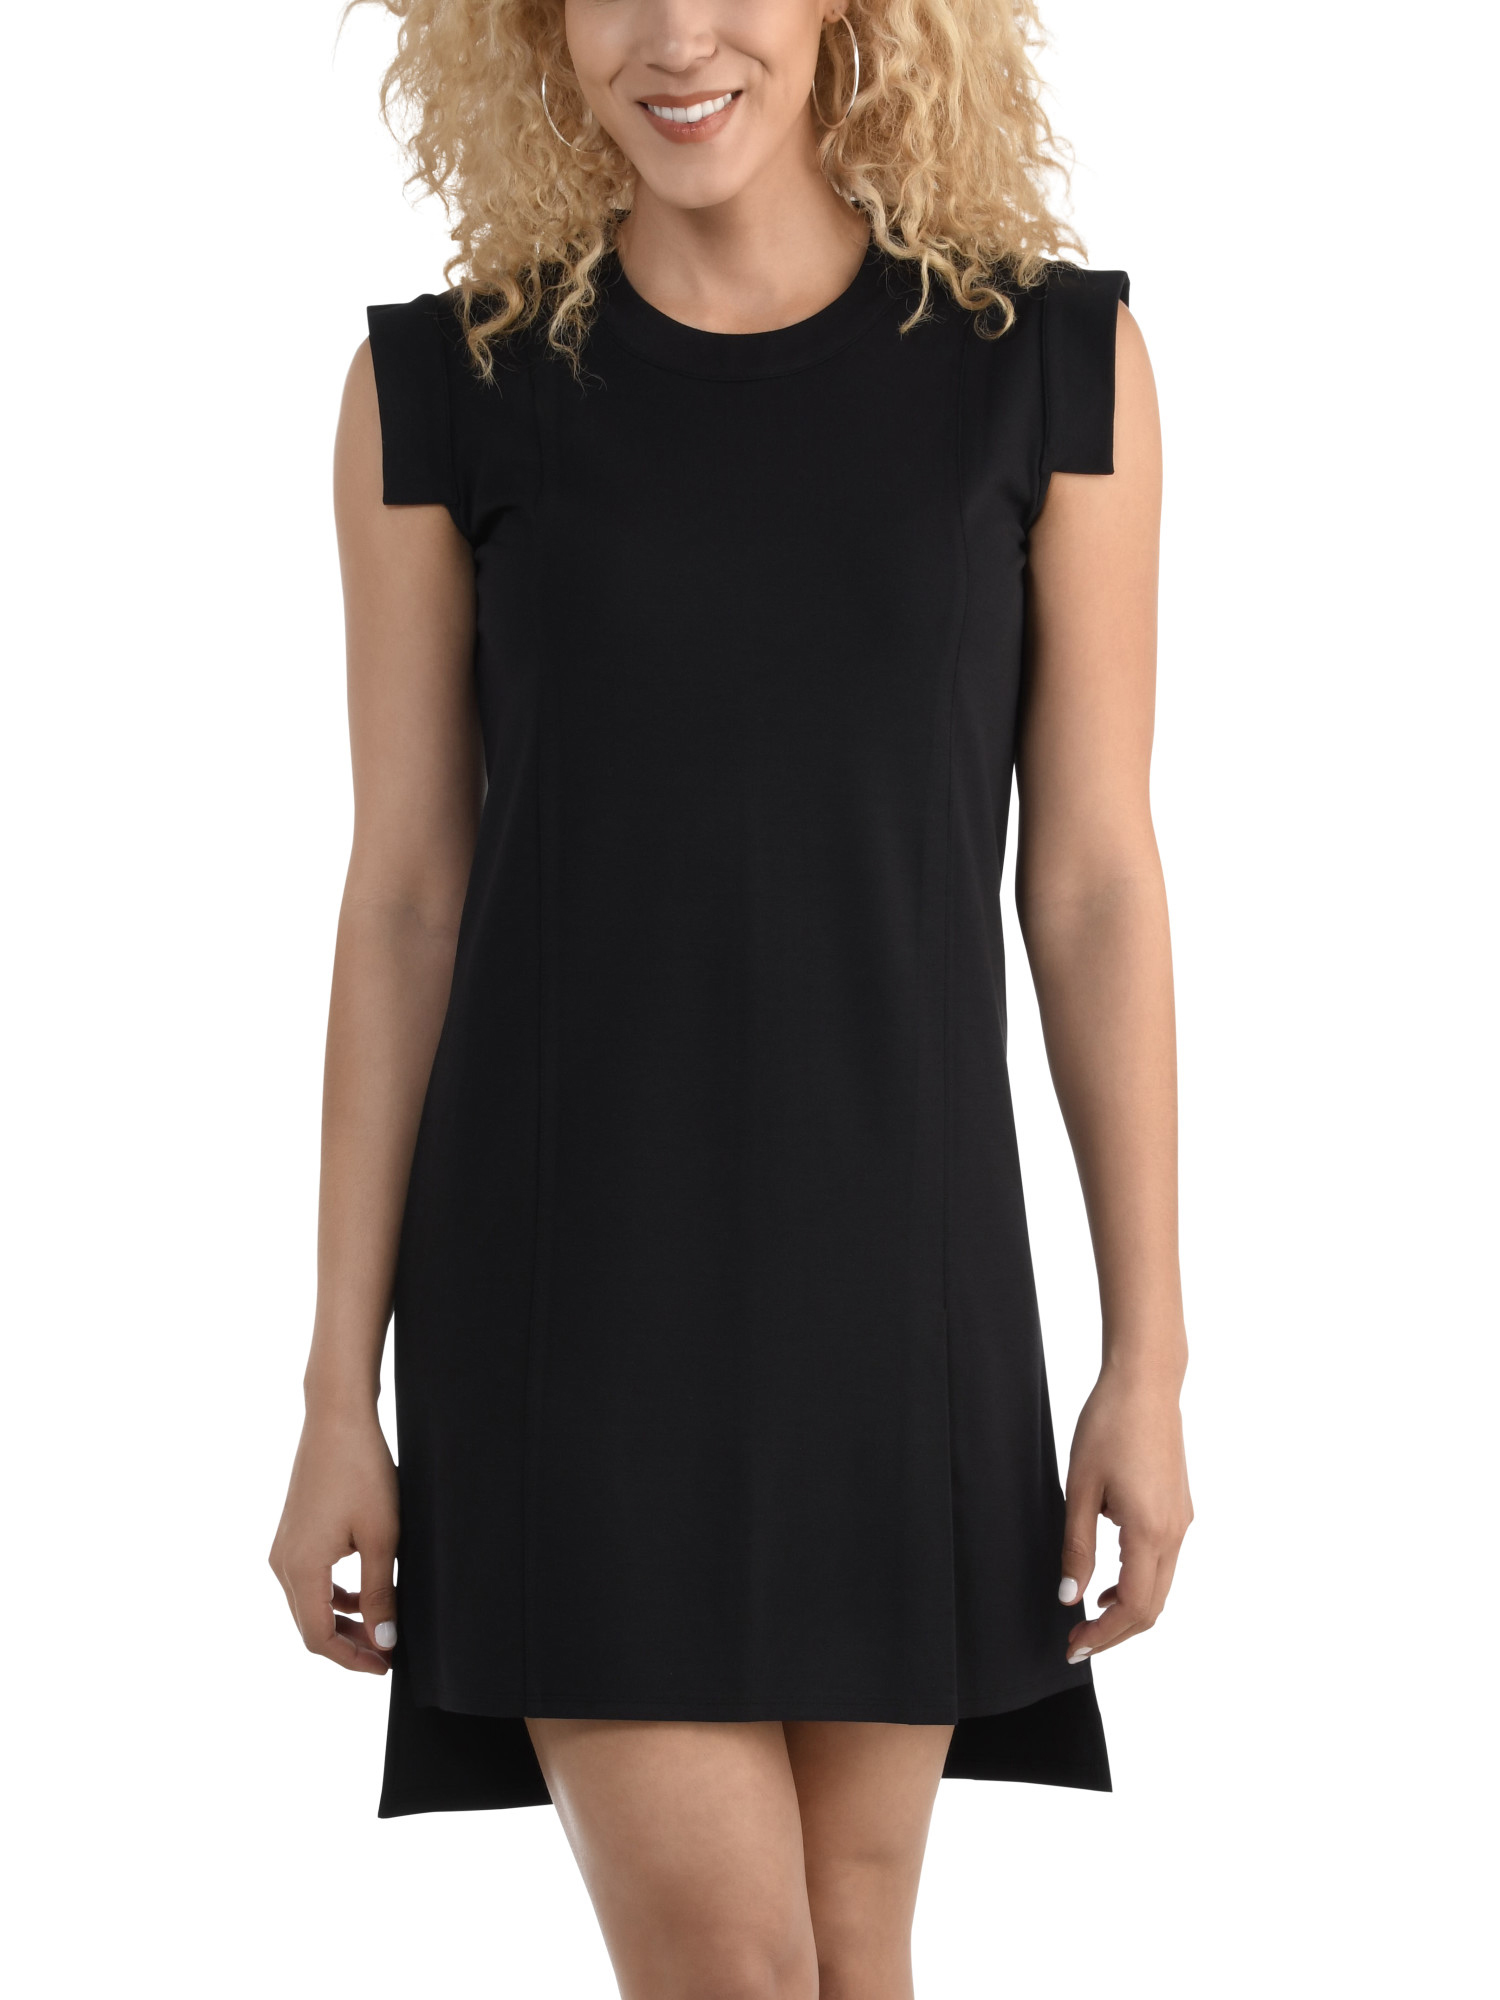 Women's Pleated Ponte Dress, Available in Sizes up to 2XL